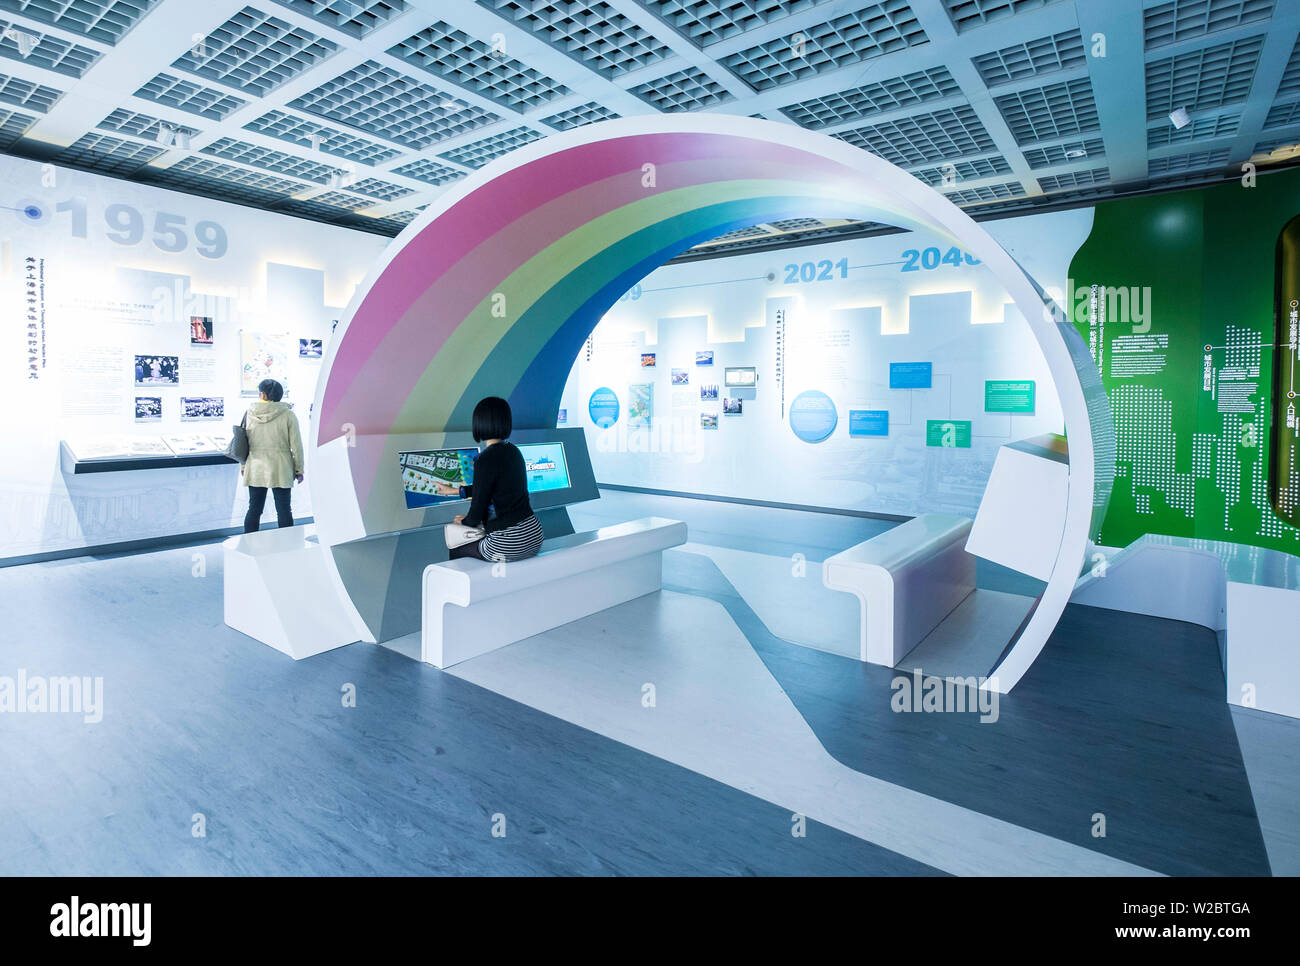 Shanghai Urban Planning Exhibition Hall, Shanghai, China - Stock Image